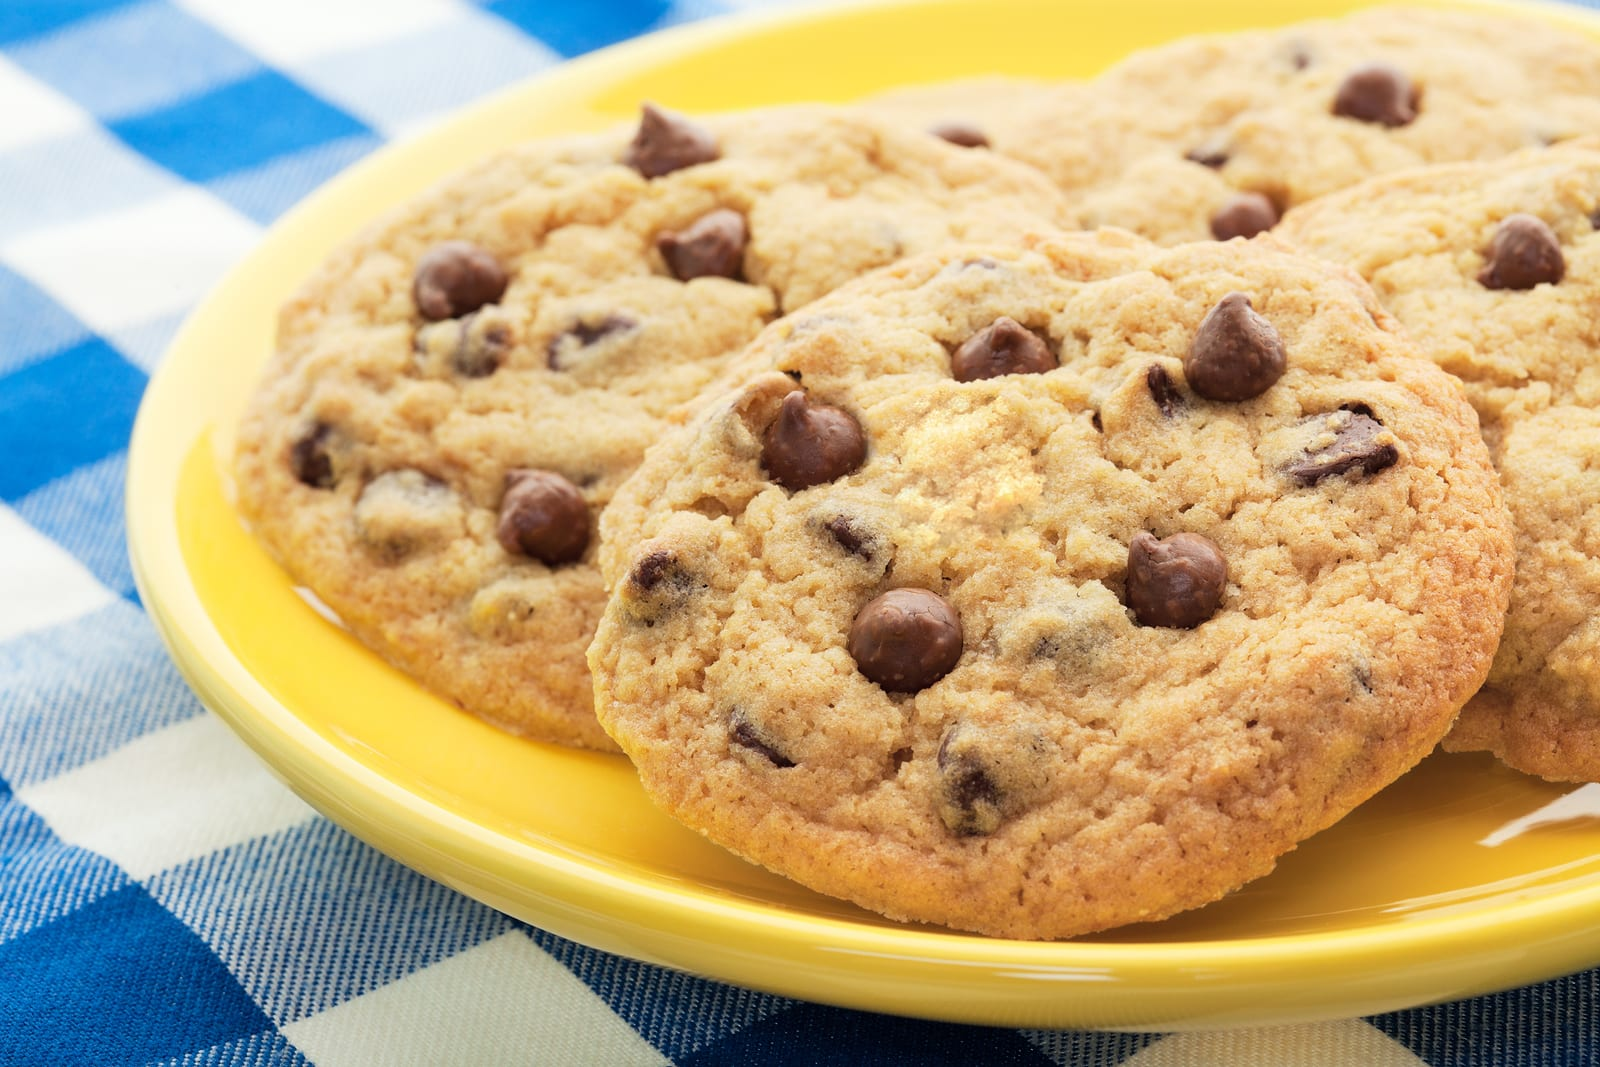 Finding The Perfect Ingredients For Chocolate Chip Cookies